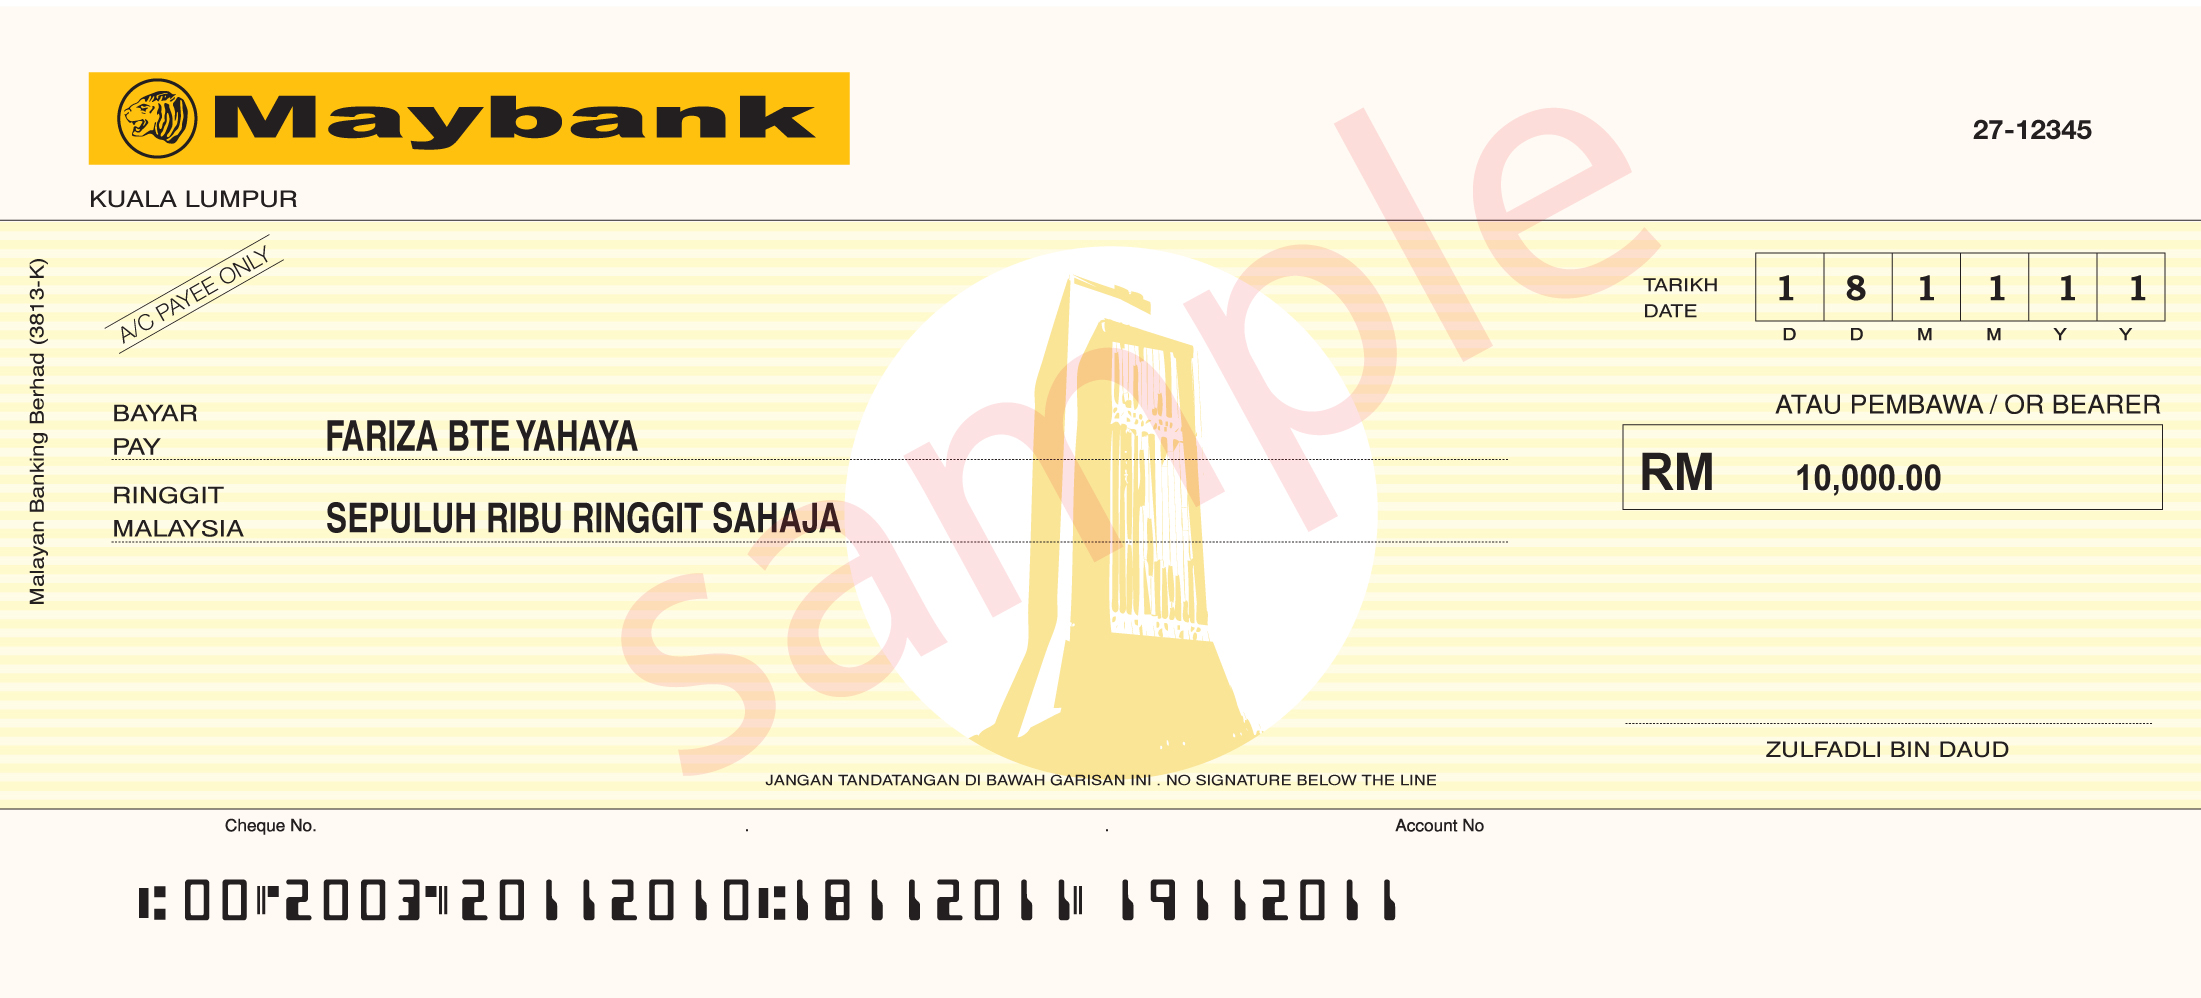 how to make bank cheque commonwealth